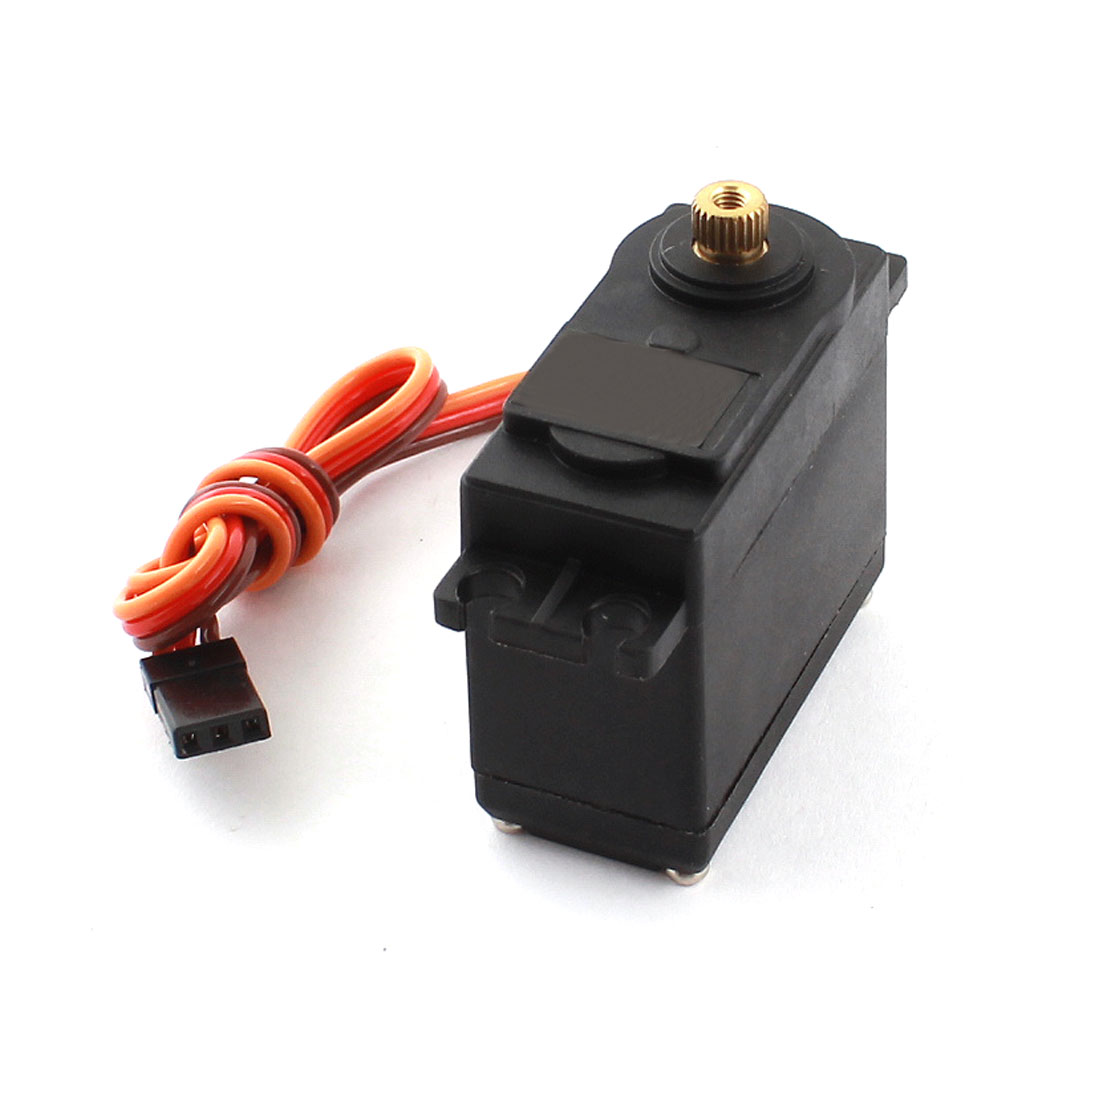 MG995 Metal Gear High Speed Torque Servo for HPI XL RC Boat Car Helicopter